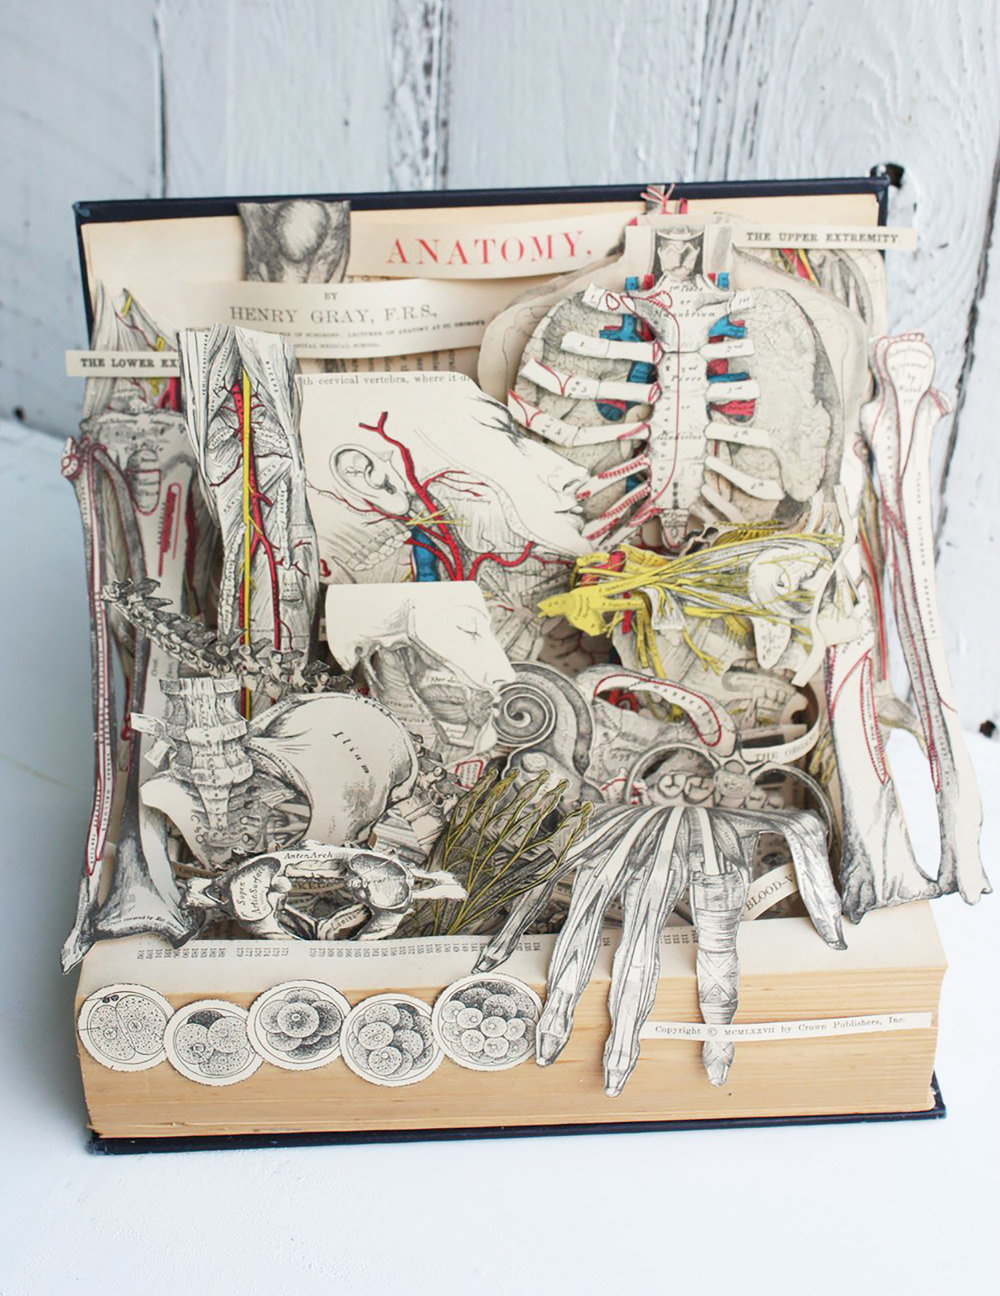 grays-anatomy-book-sculpture-04y.jpg